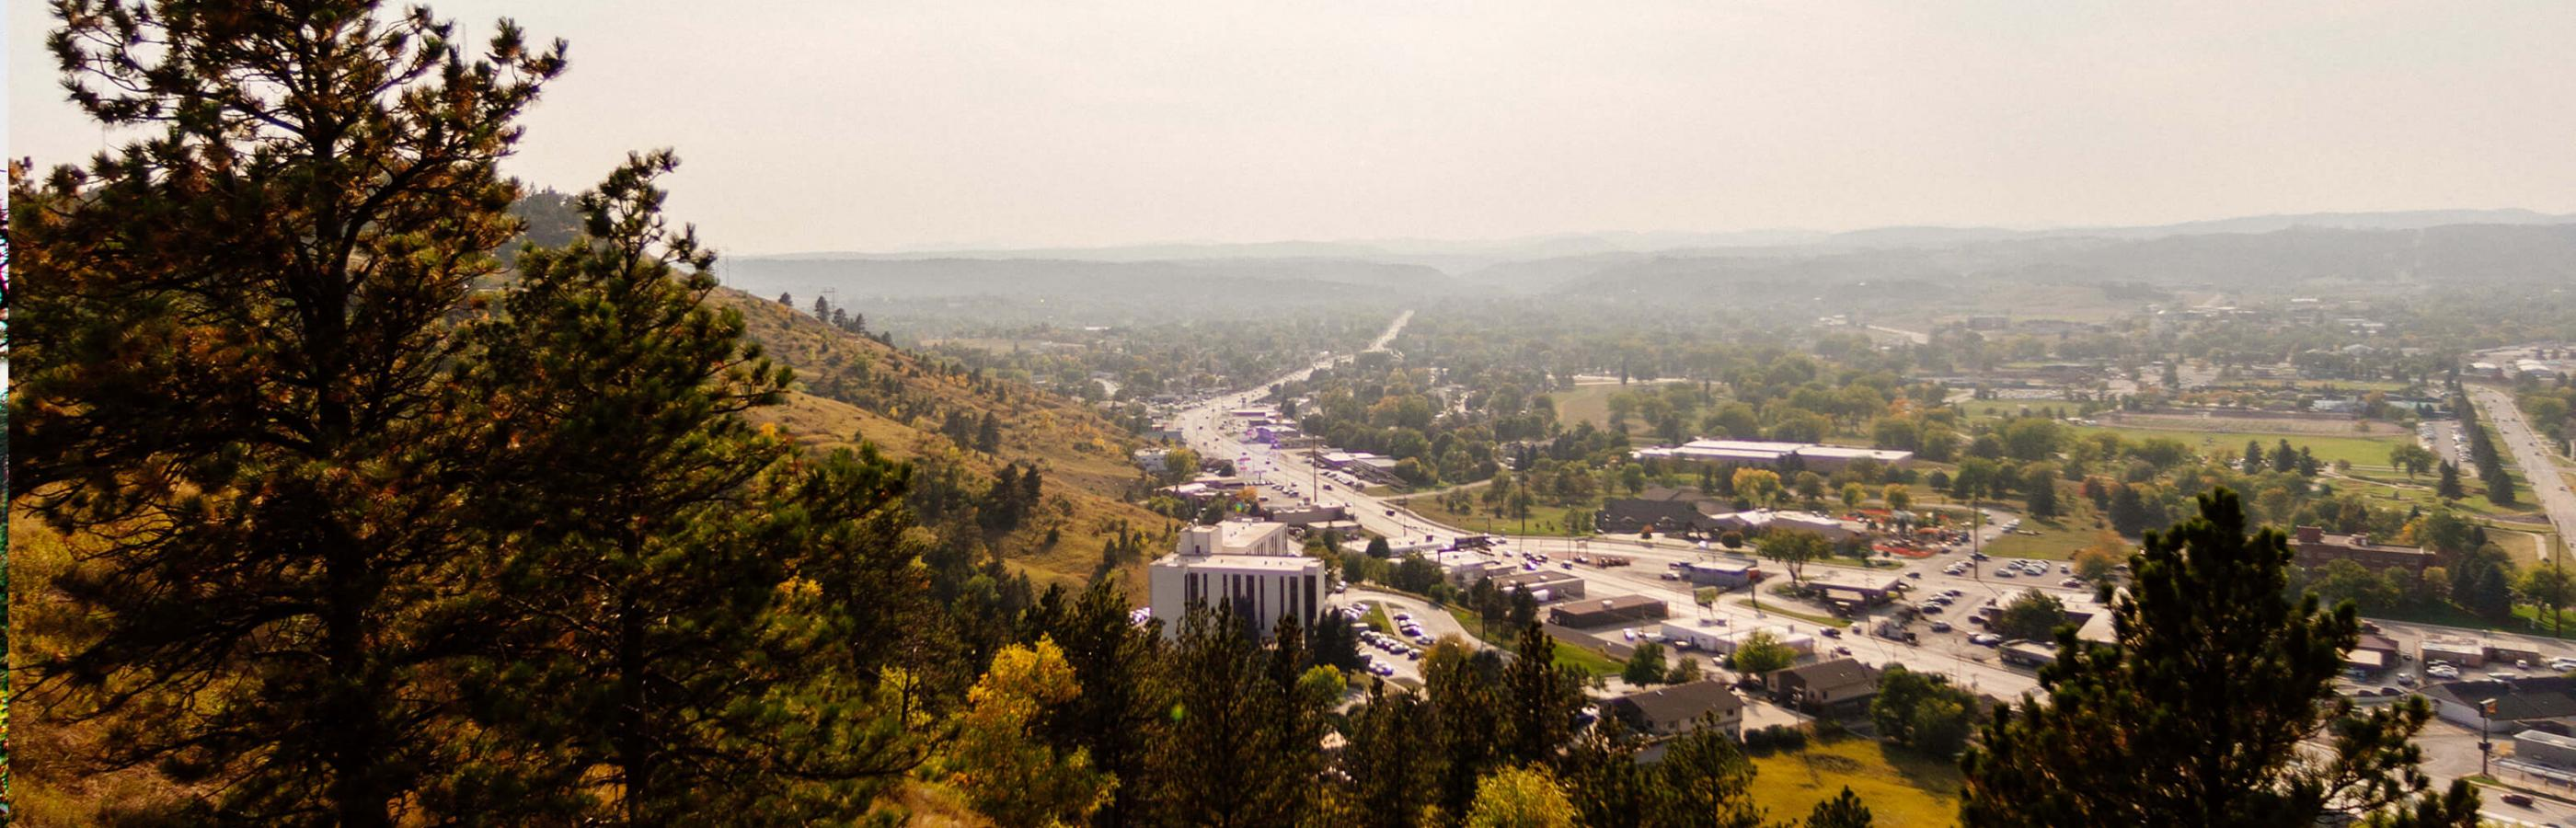 View of Rapid City from Skyline Drive and Wilderness Area